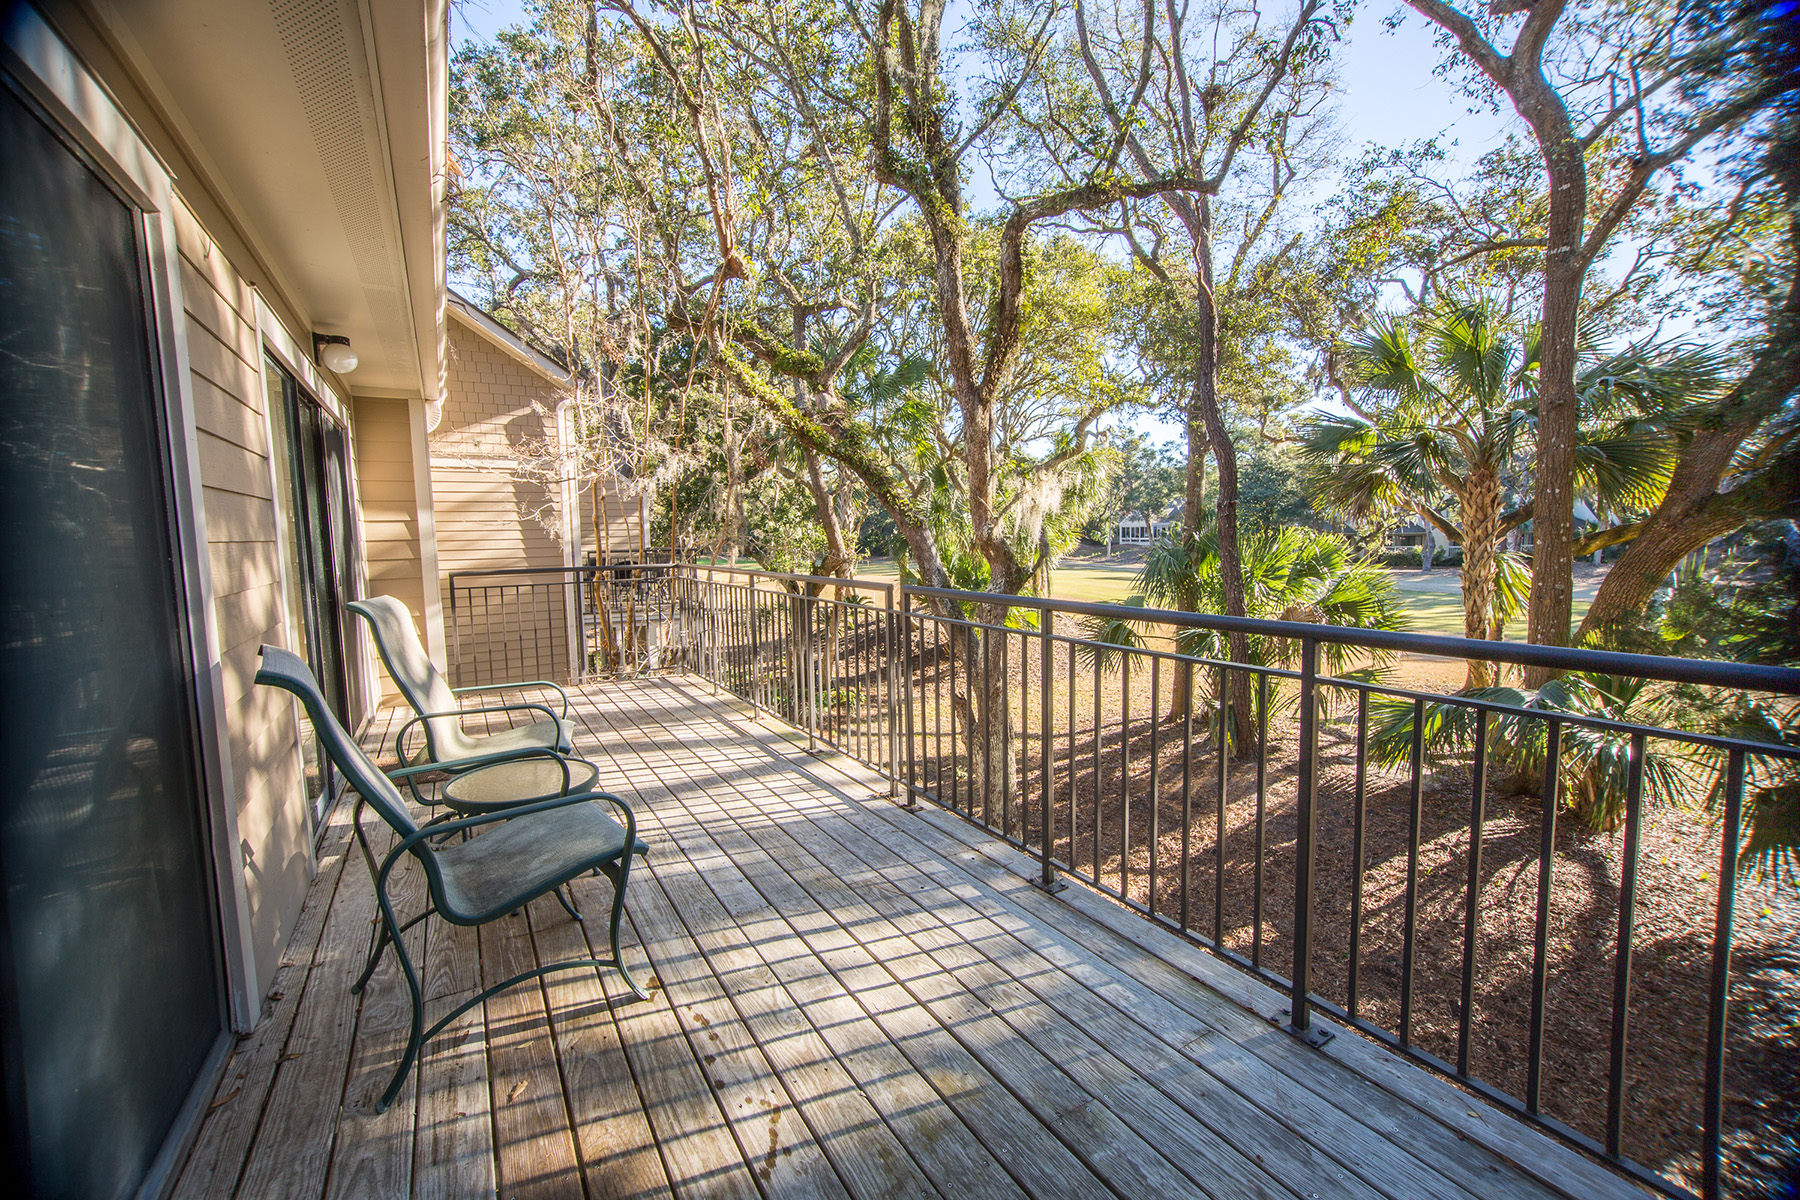 Single Family Home for Sale at 174 High Hammock Road Seabrook, South Carolina 29455 United States